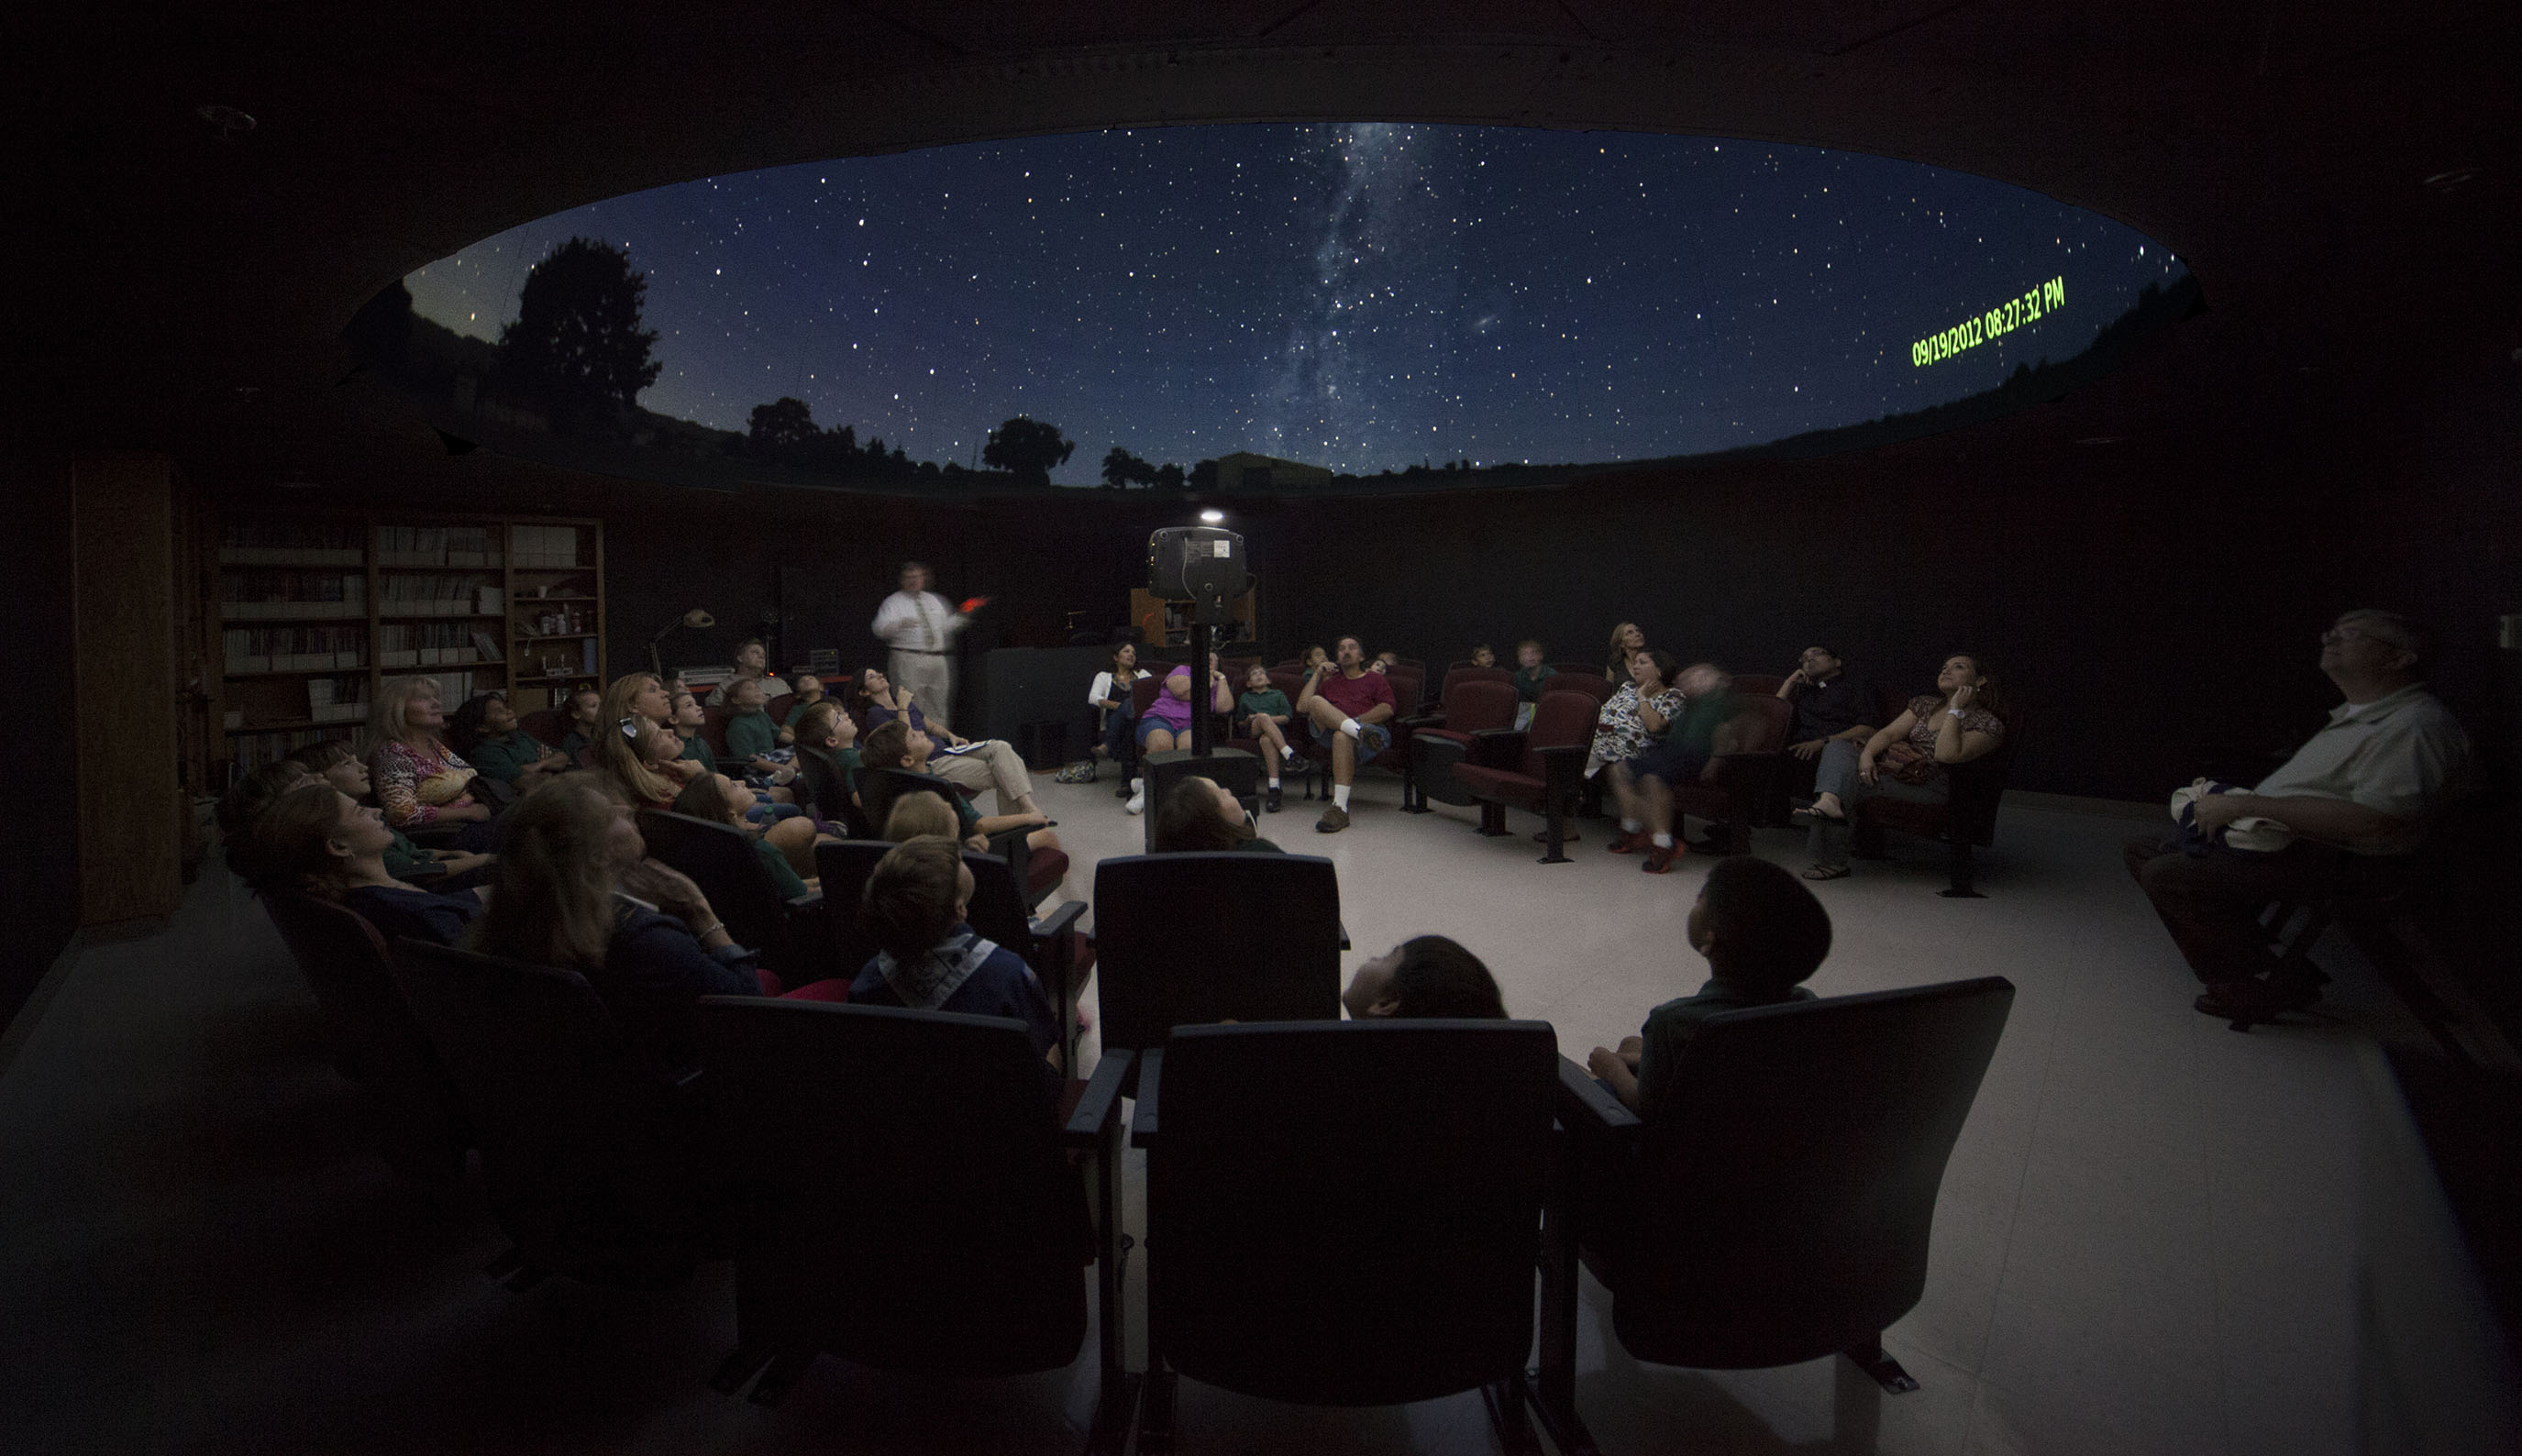 Dr. Kenneth Rumstay presents a program in the planetarium.